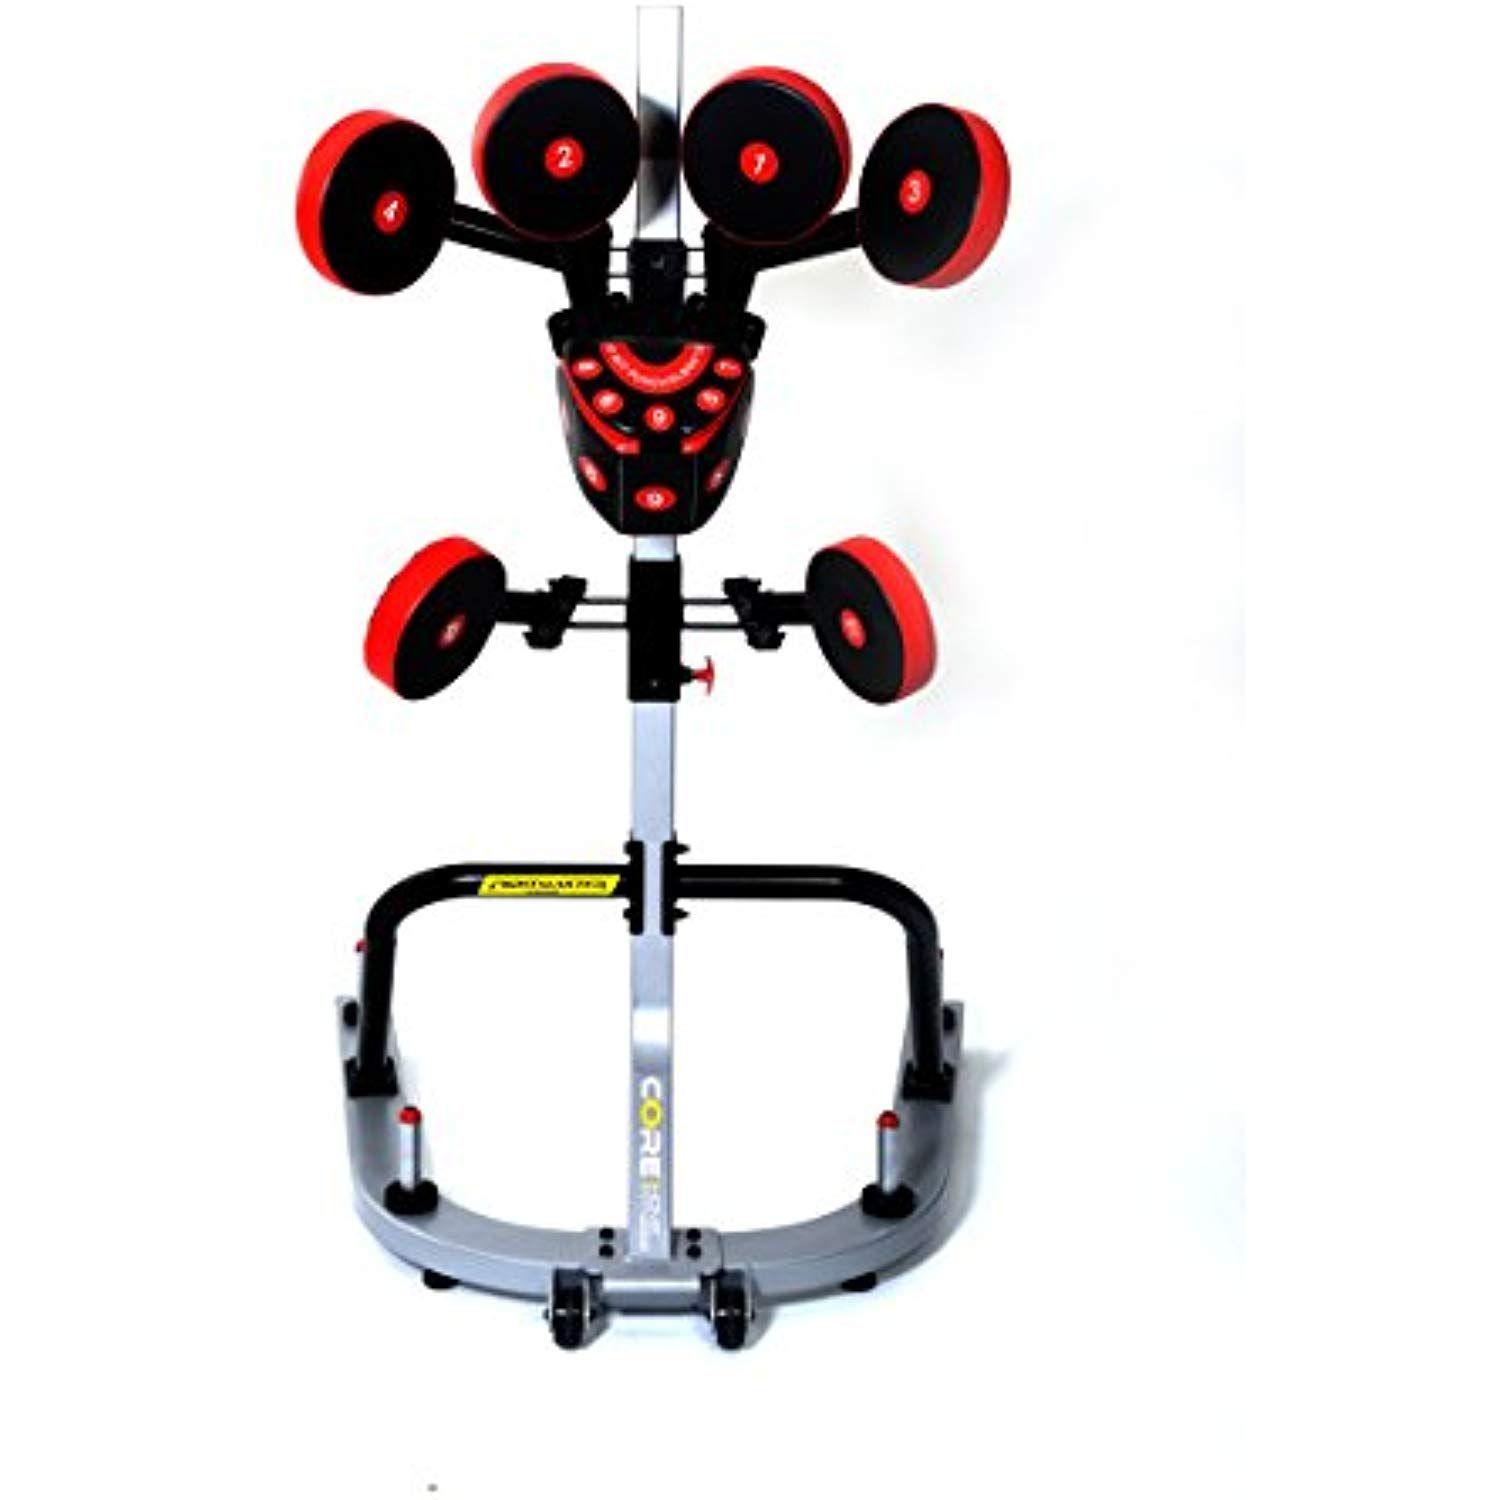 Core home fitness fightmaster boxing trainer read more